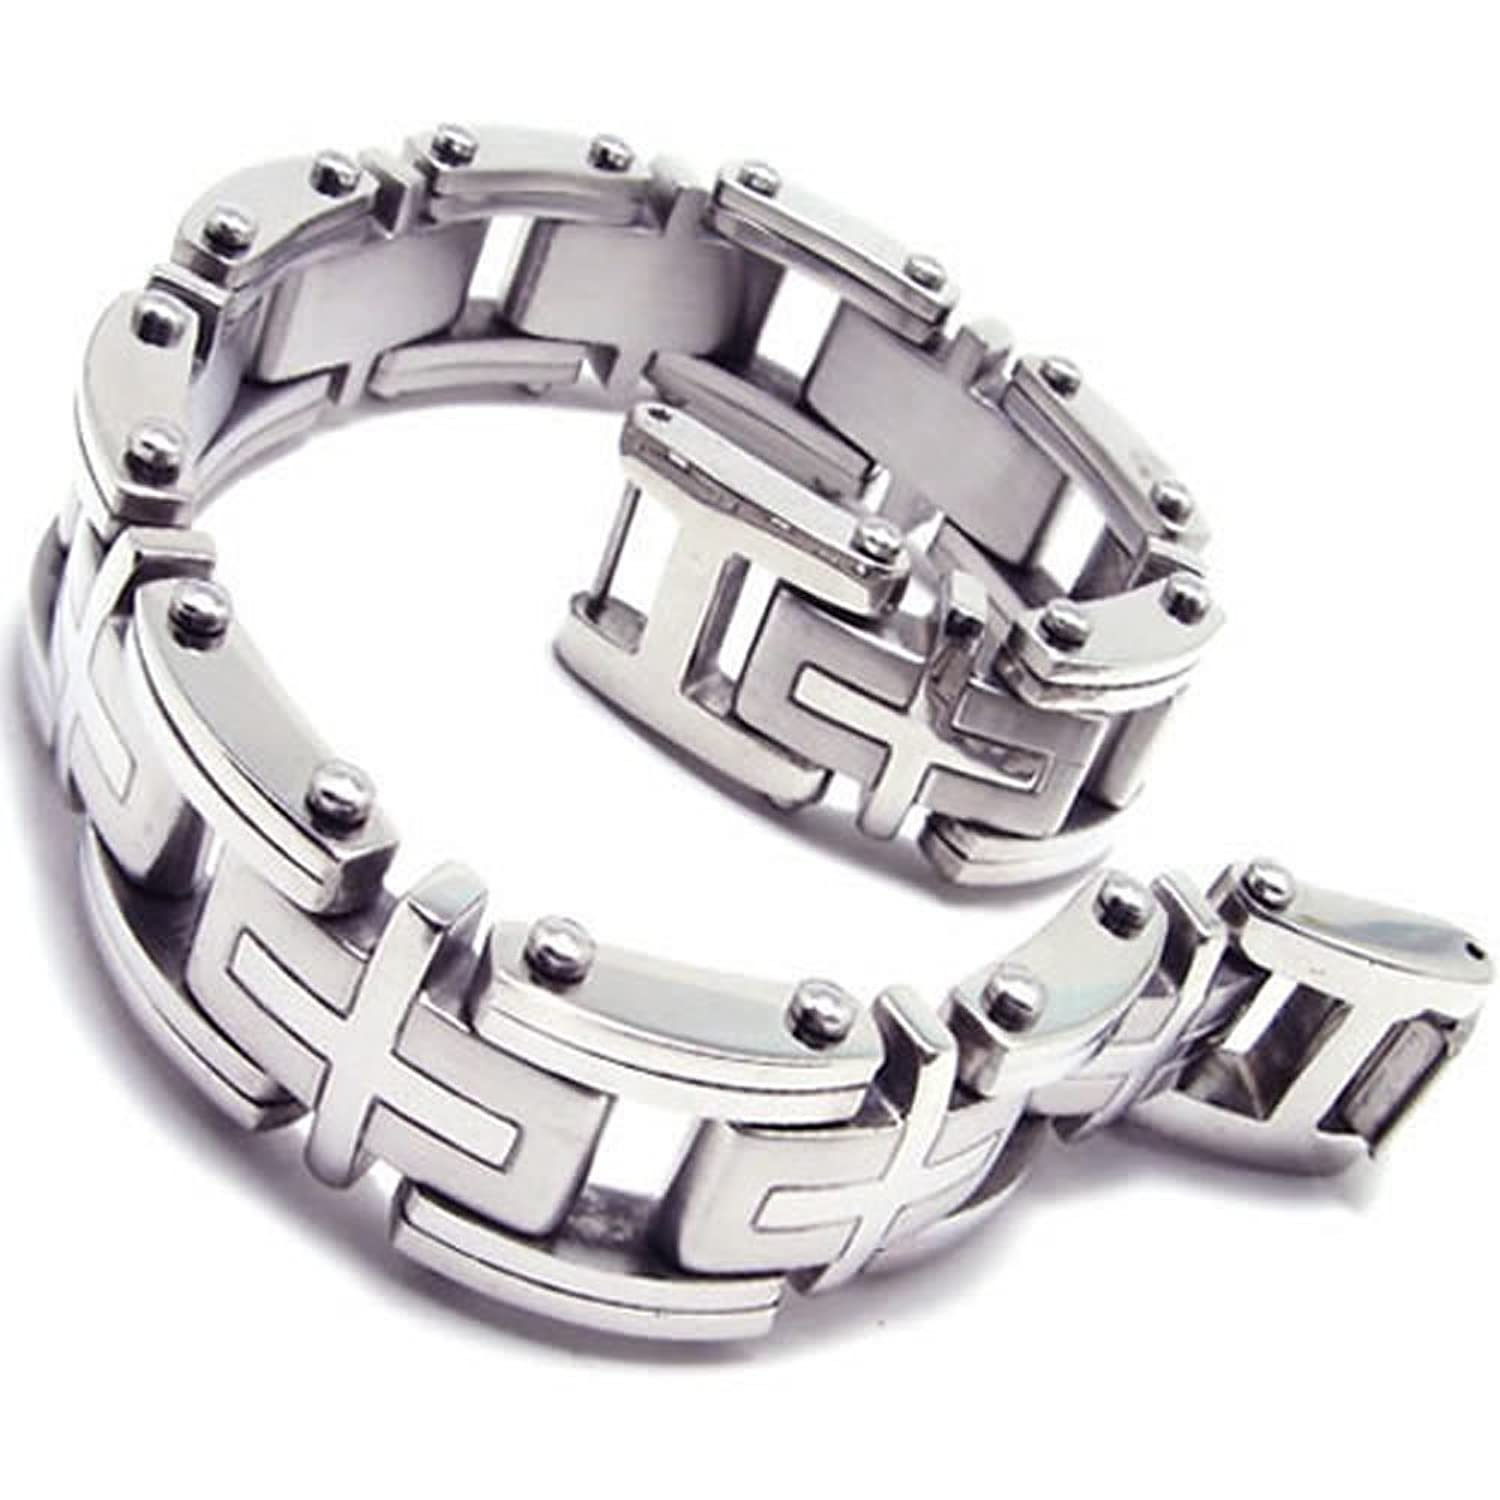 boys chain arrival new link jewelry sets bracelet mens item steel from in stainless silver byzantine necklace set gold box